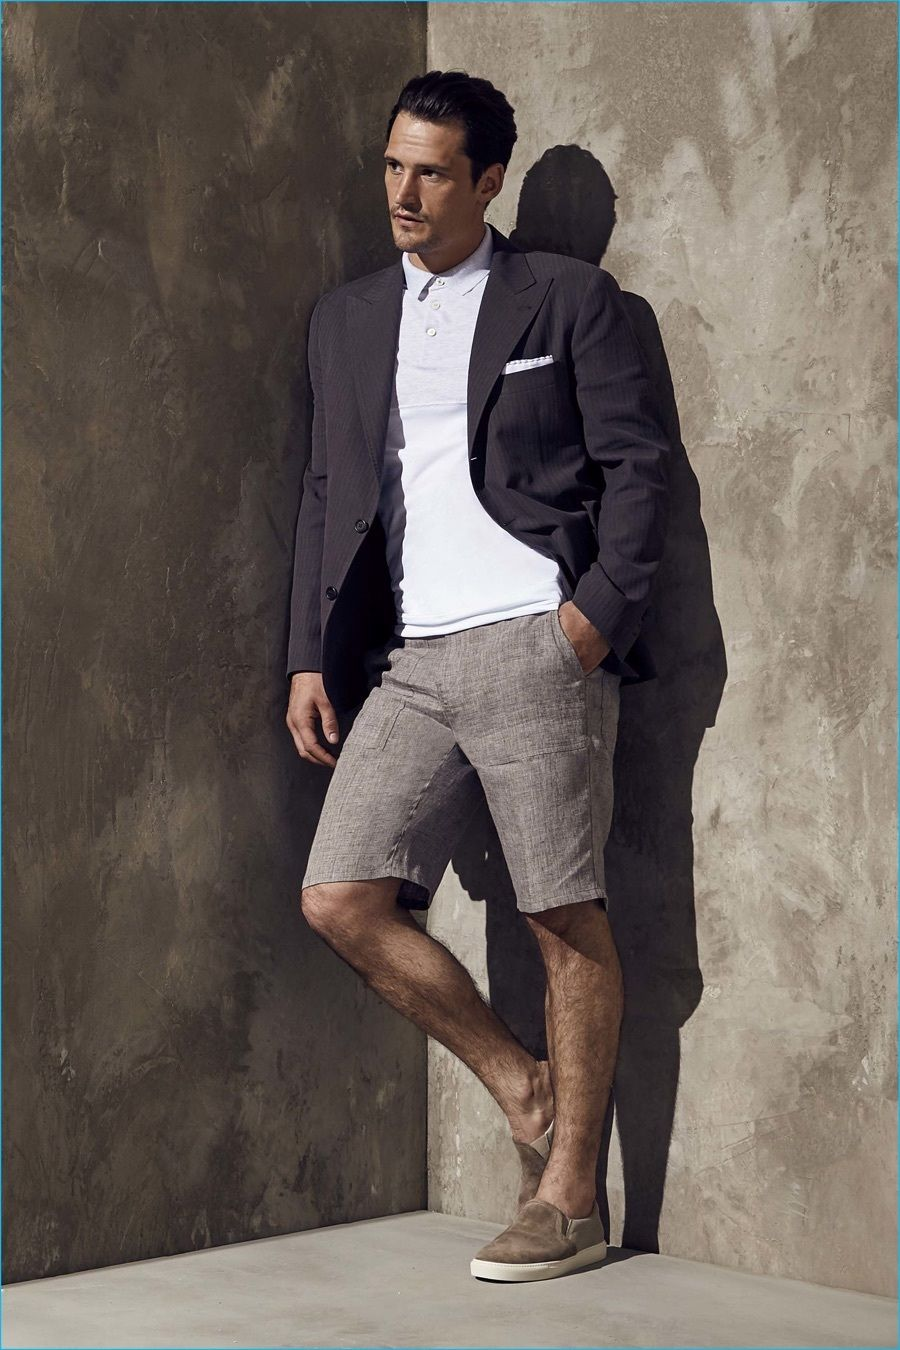 ... slip-on sneakers brings the dressed-down touch to the ensemble. Shop  this look on Lookastic: https://lookastic.com/men/looks/blazer-polo-shorts/20575  ...